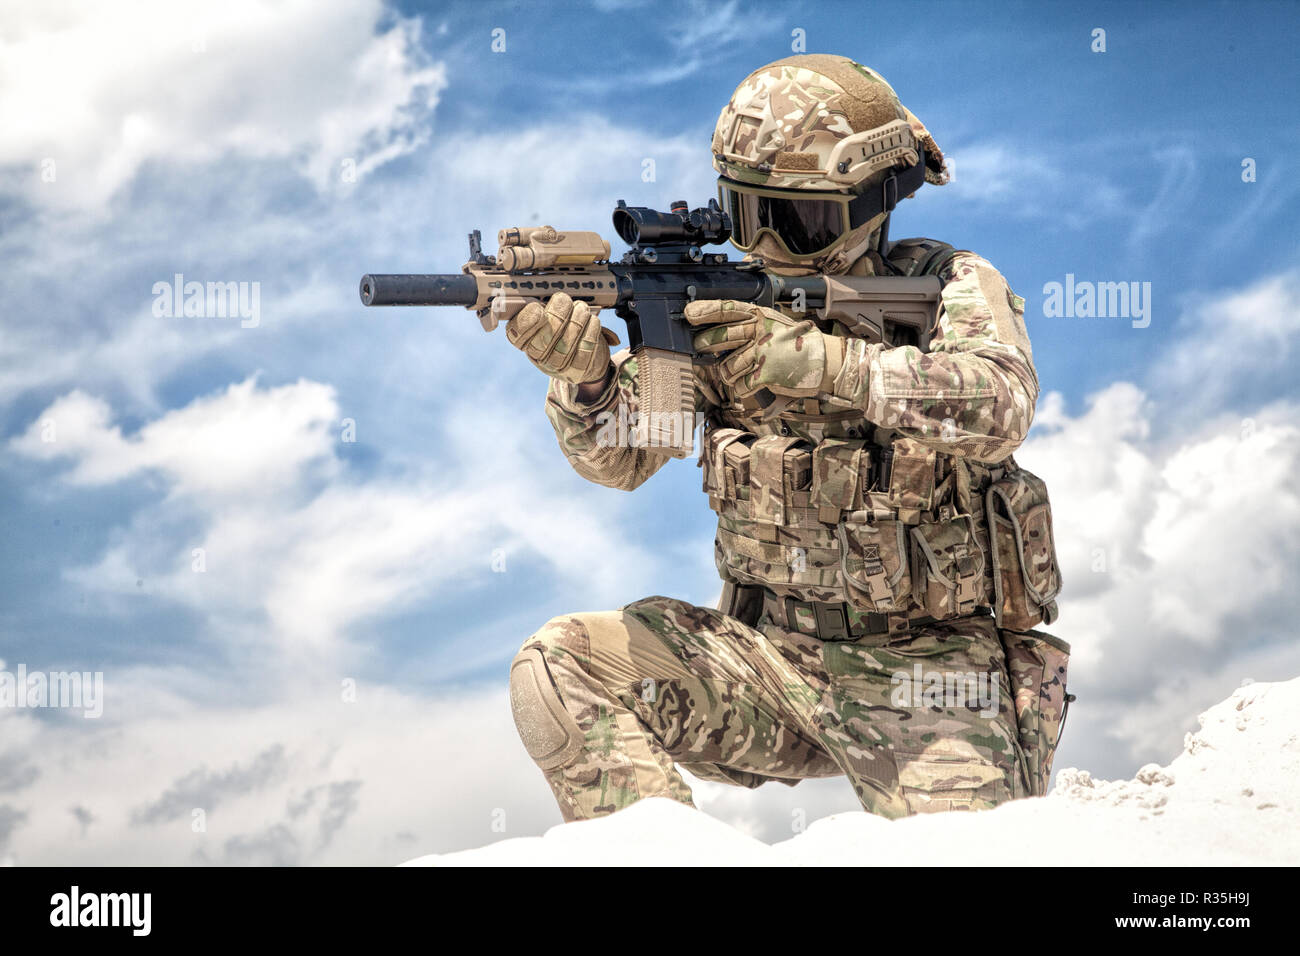 hight resolution of fully equipped with tactical ammunition airsoft player in military camouflage uniform aiming with optical sight